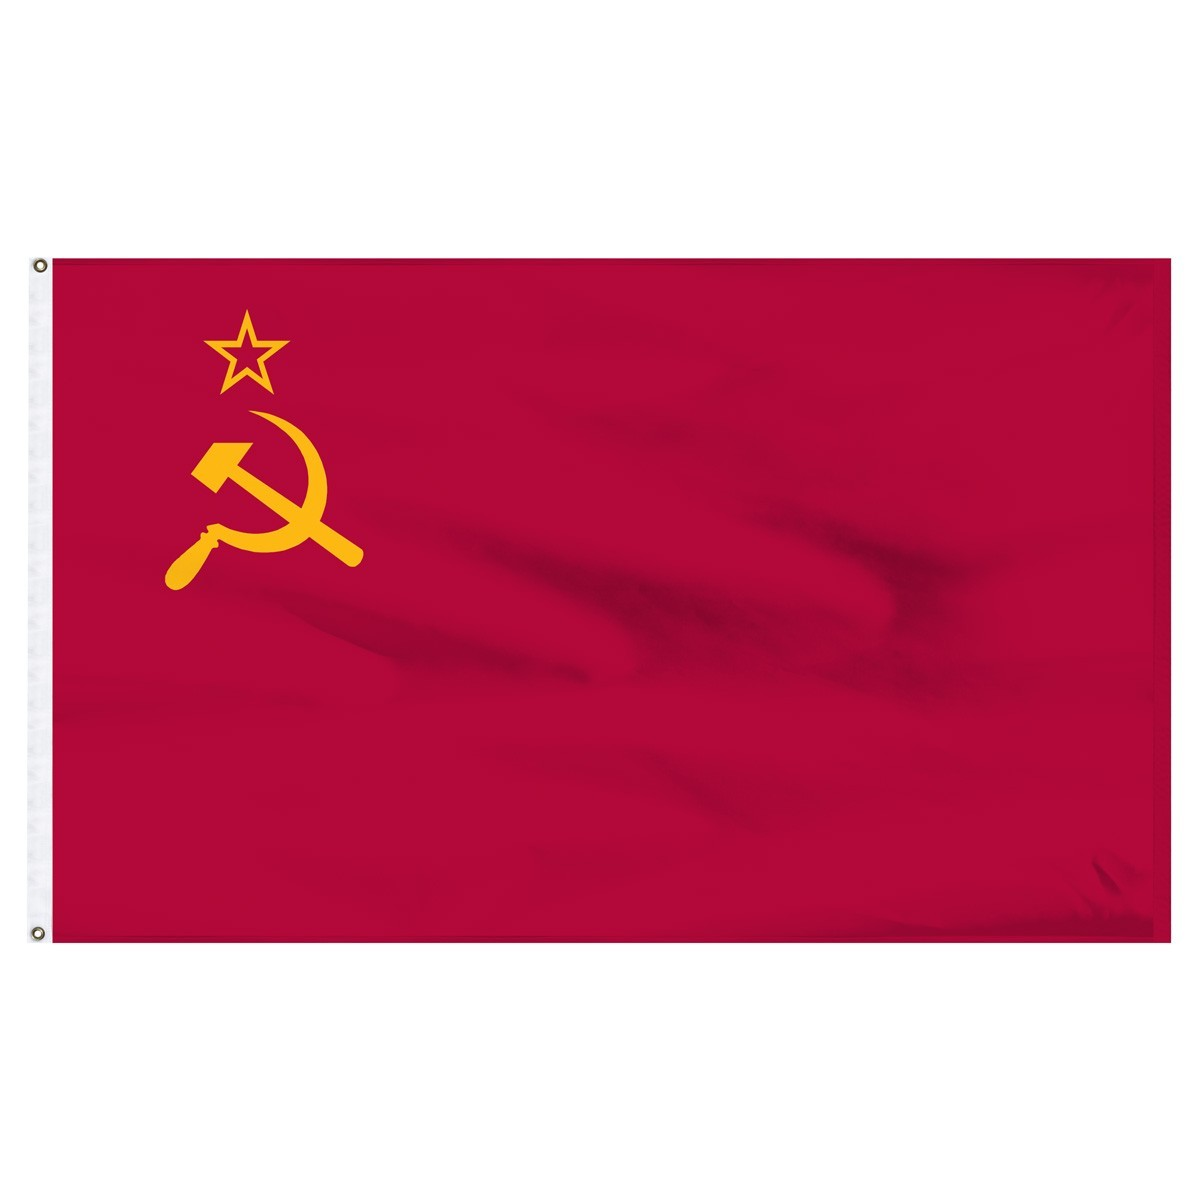 USSR 4' x 6' Outdoor Nylon Flag